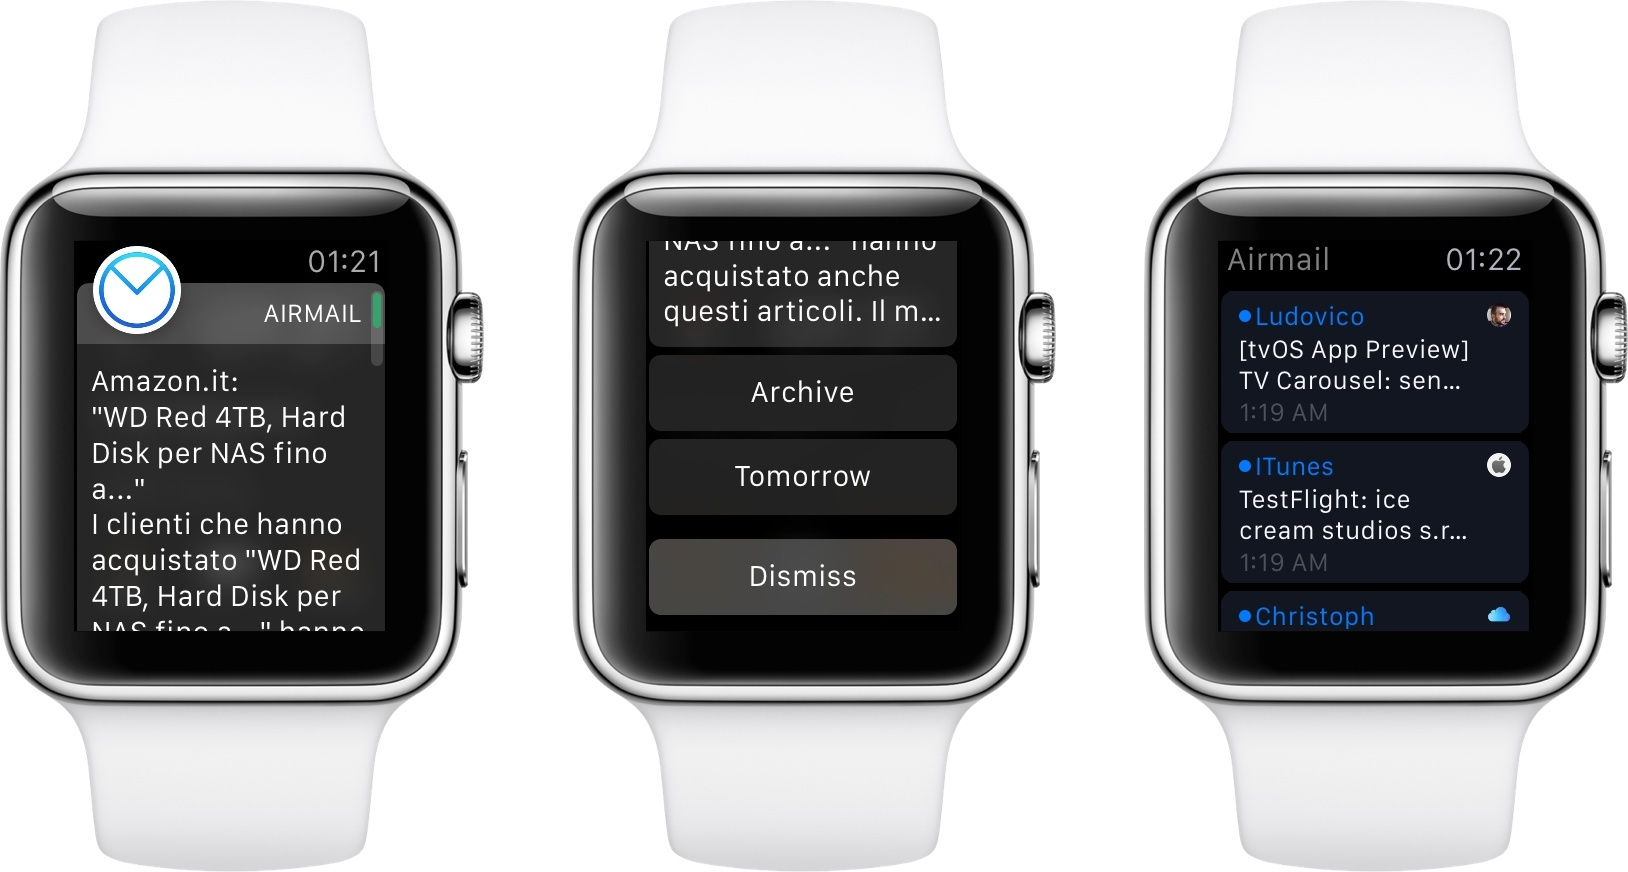 Airmail on Apple Watch.